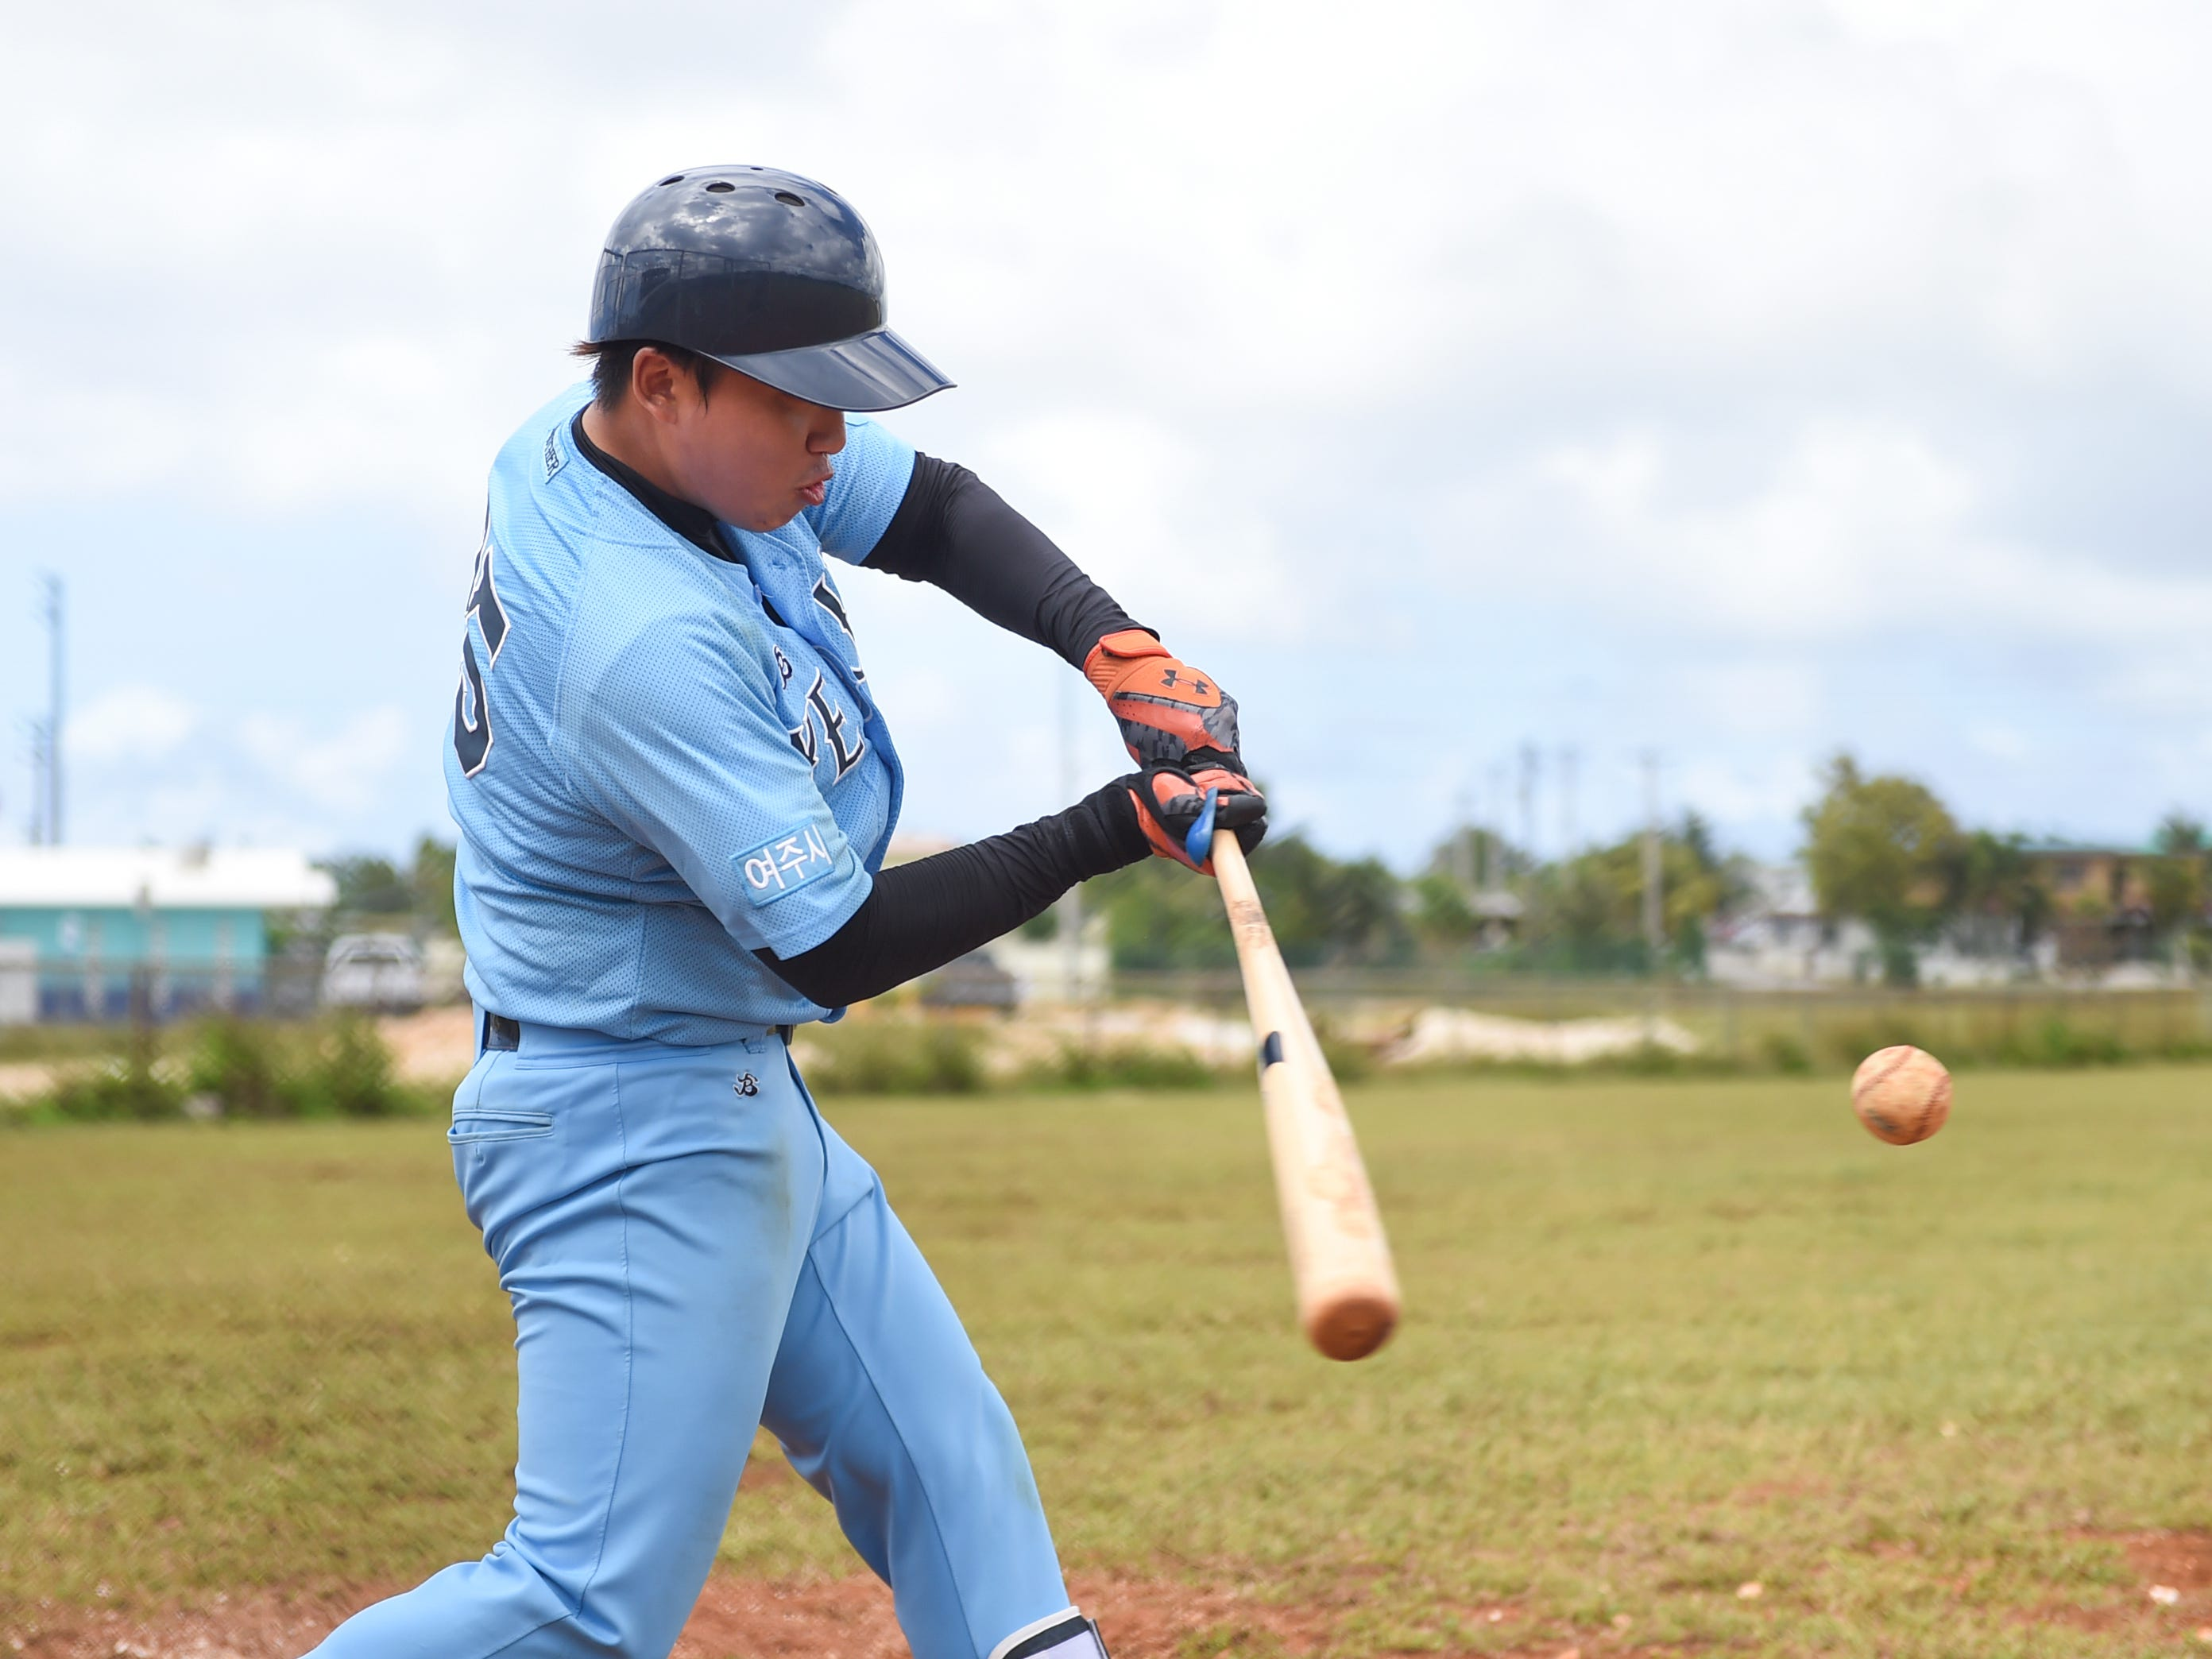 Korean baseball player Kang Un Kim goes through batting drills with during his Yeoju University team's winter training at the Guam Sports Complex in Dededo, Feb. 11, 2019.